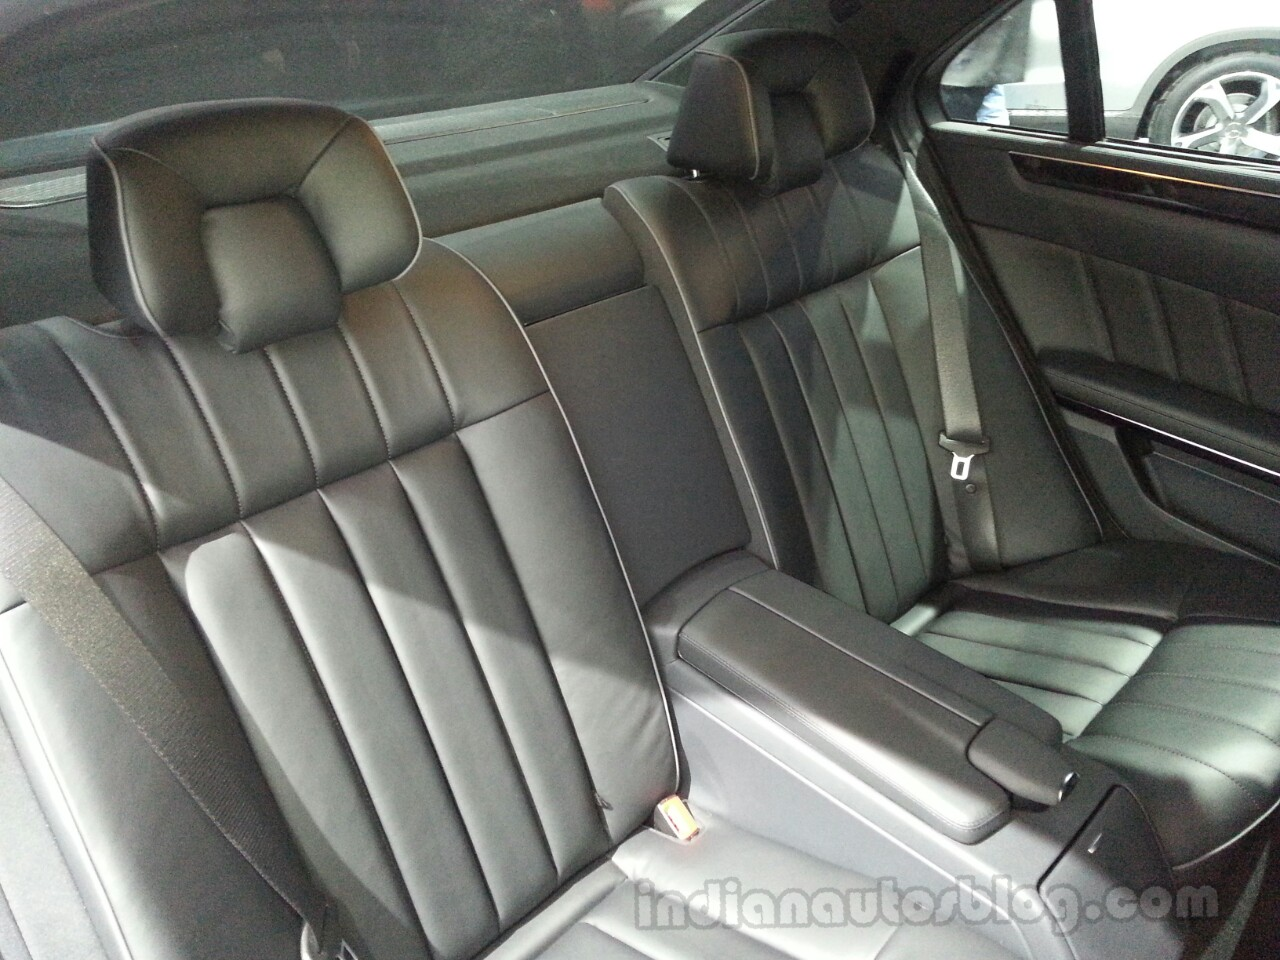 2014 Mercedes E Class Long wheelbase rear seats